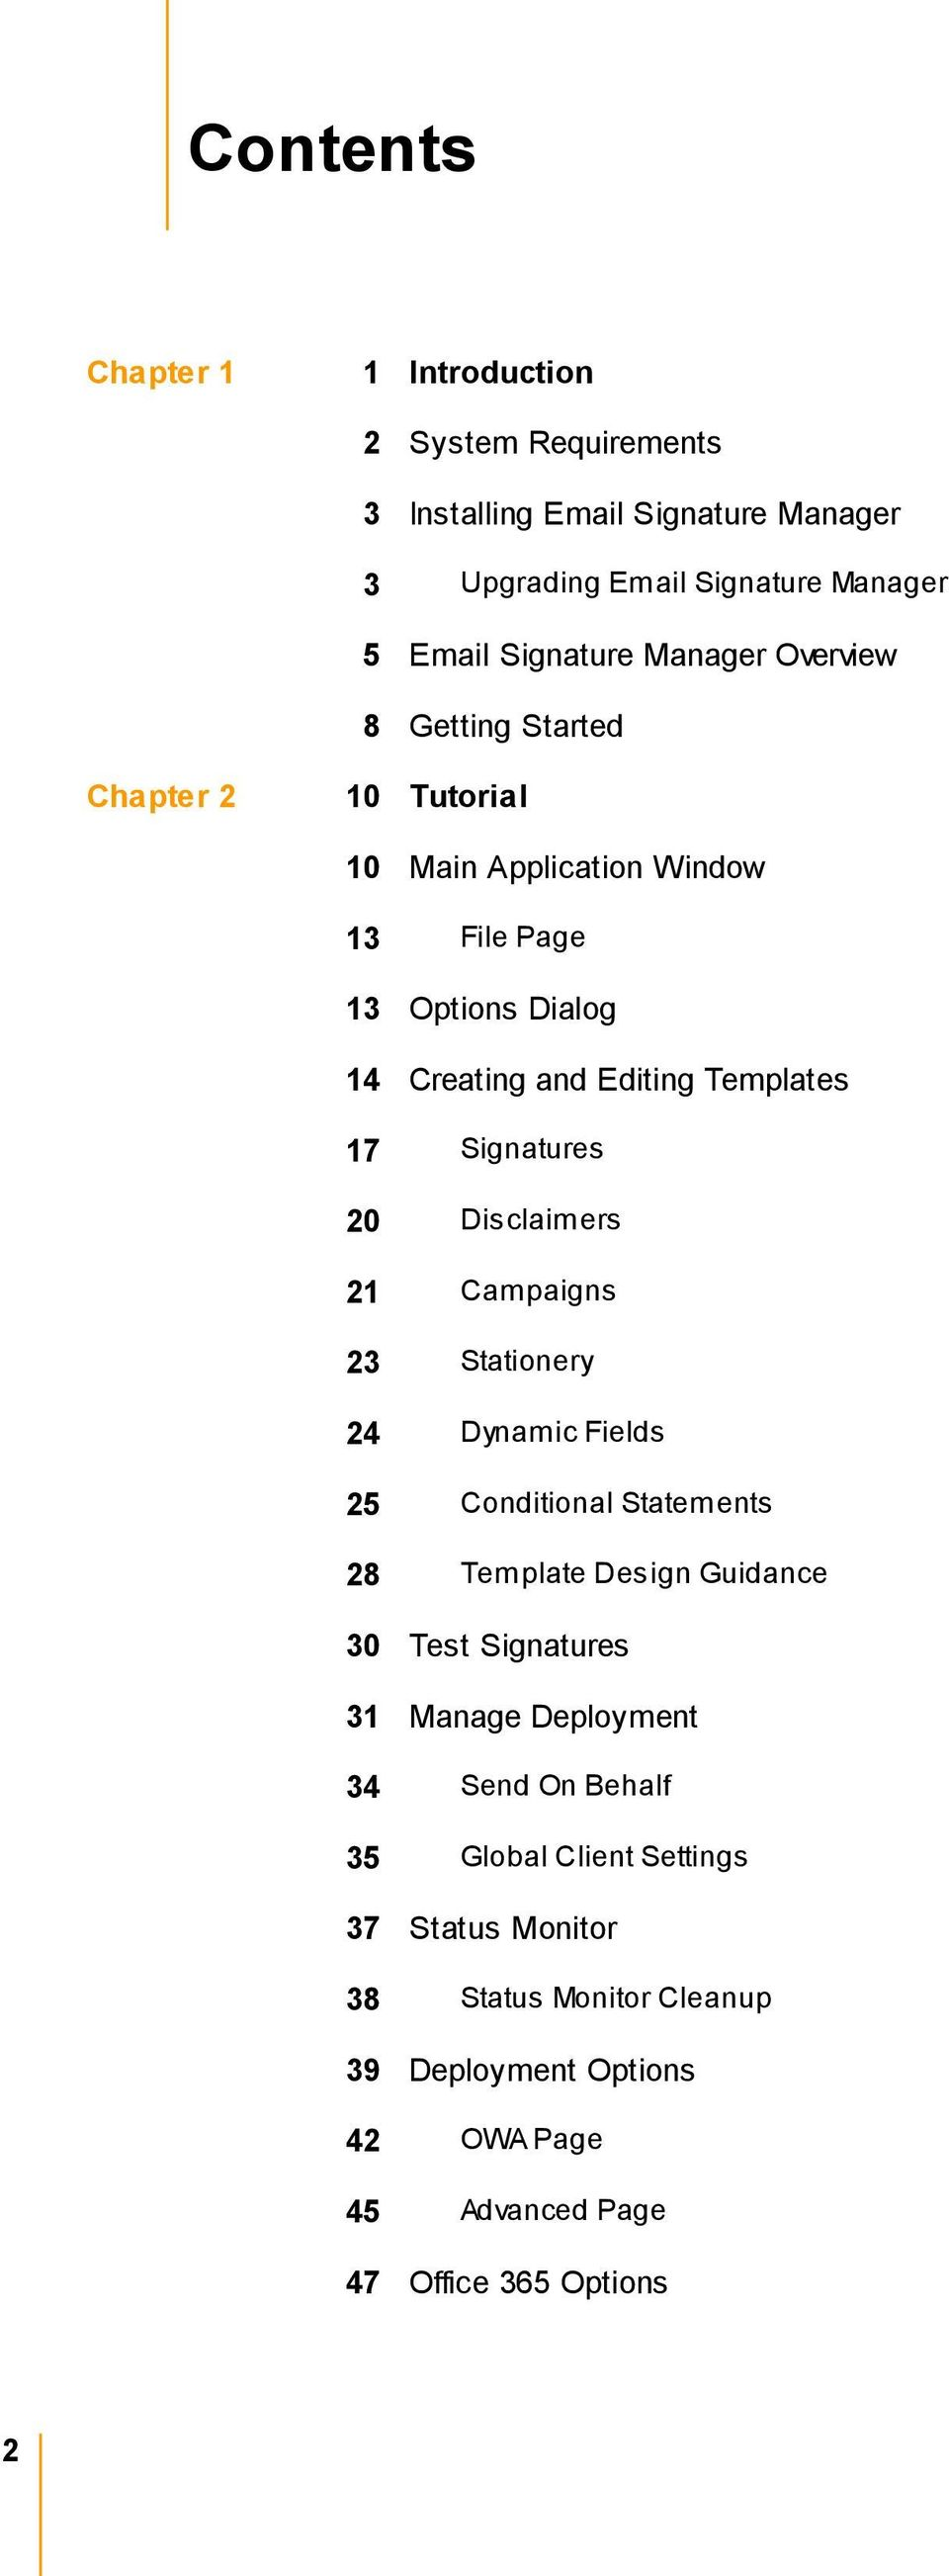 Signatures 0 Disclaimers 1 Campaigns 3 Stationery 4 Dynamic Fields 5 Conditional Statements 8 Template Design Guidance 30 Test Signatures 31 Manage